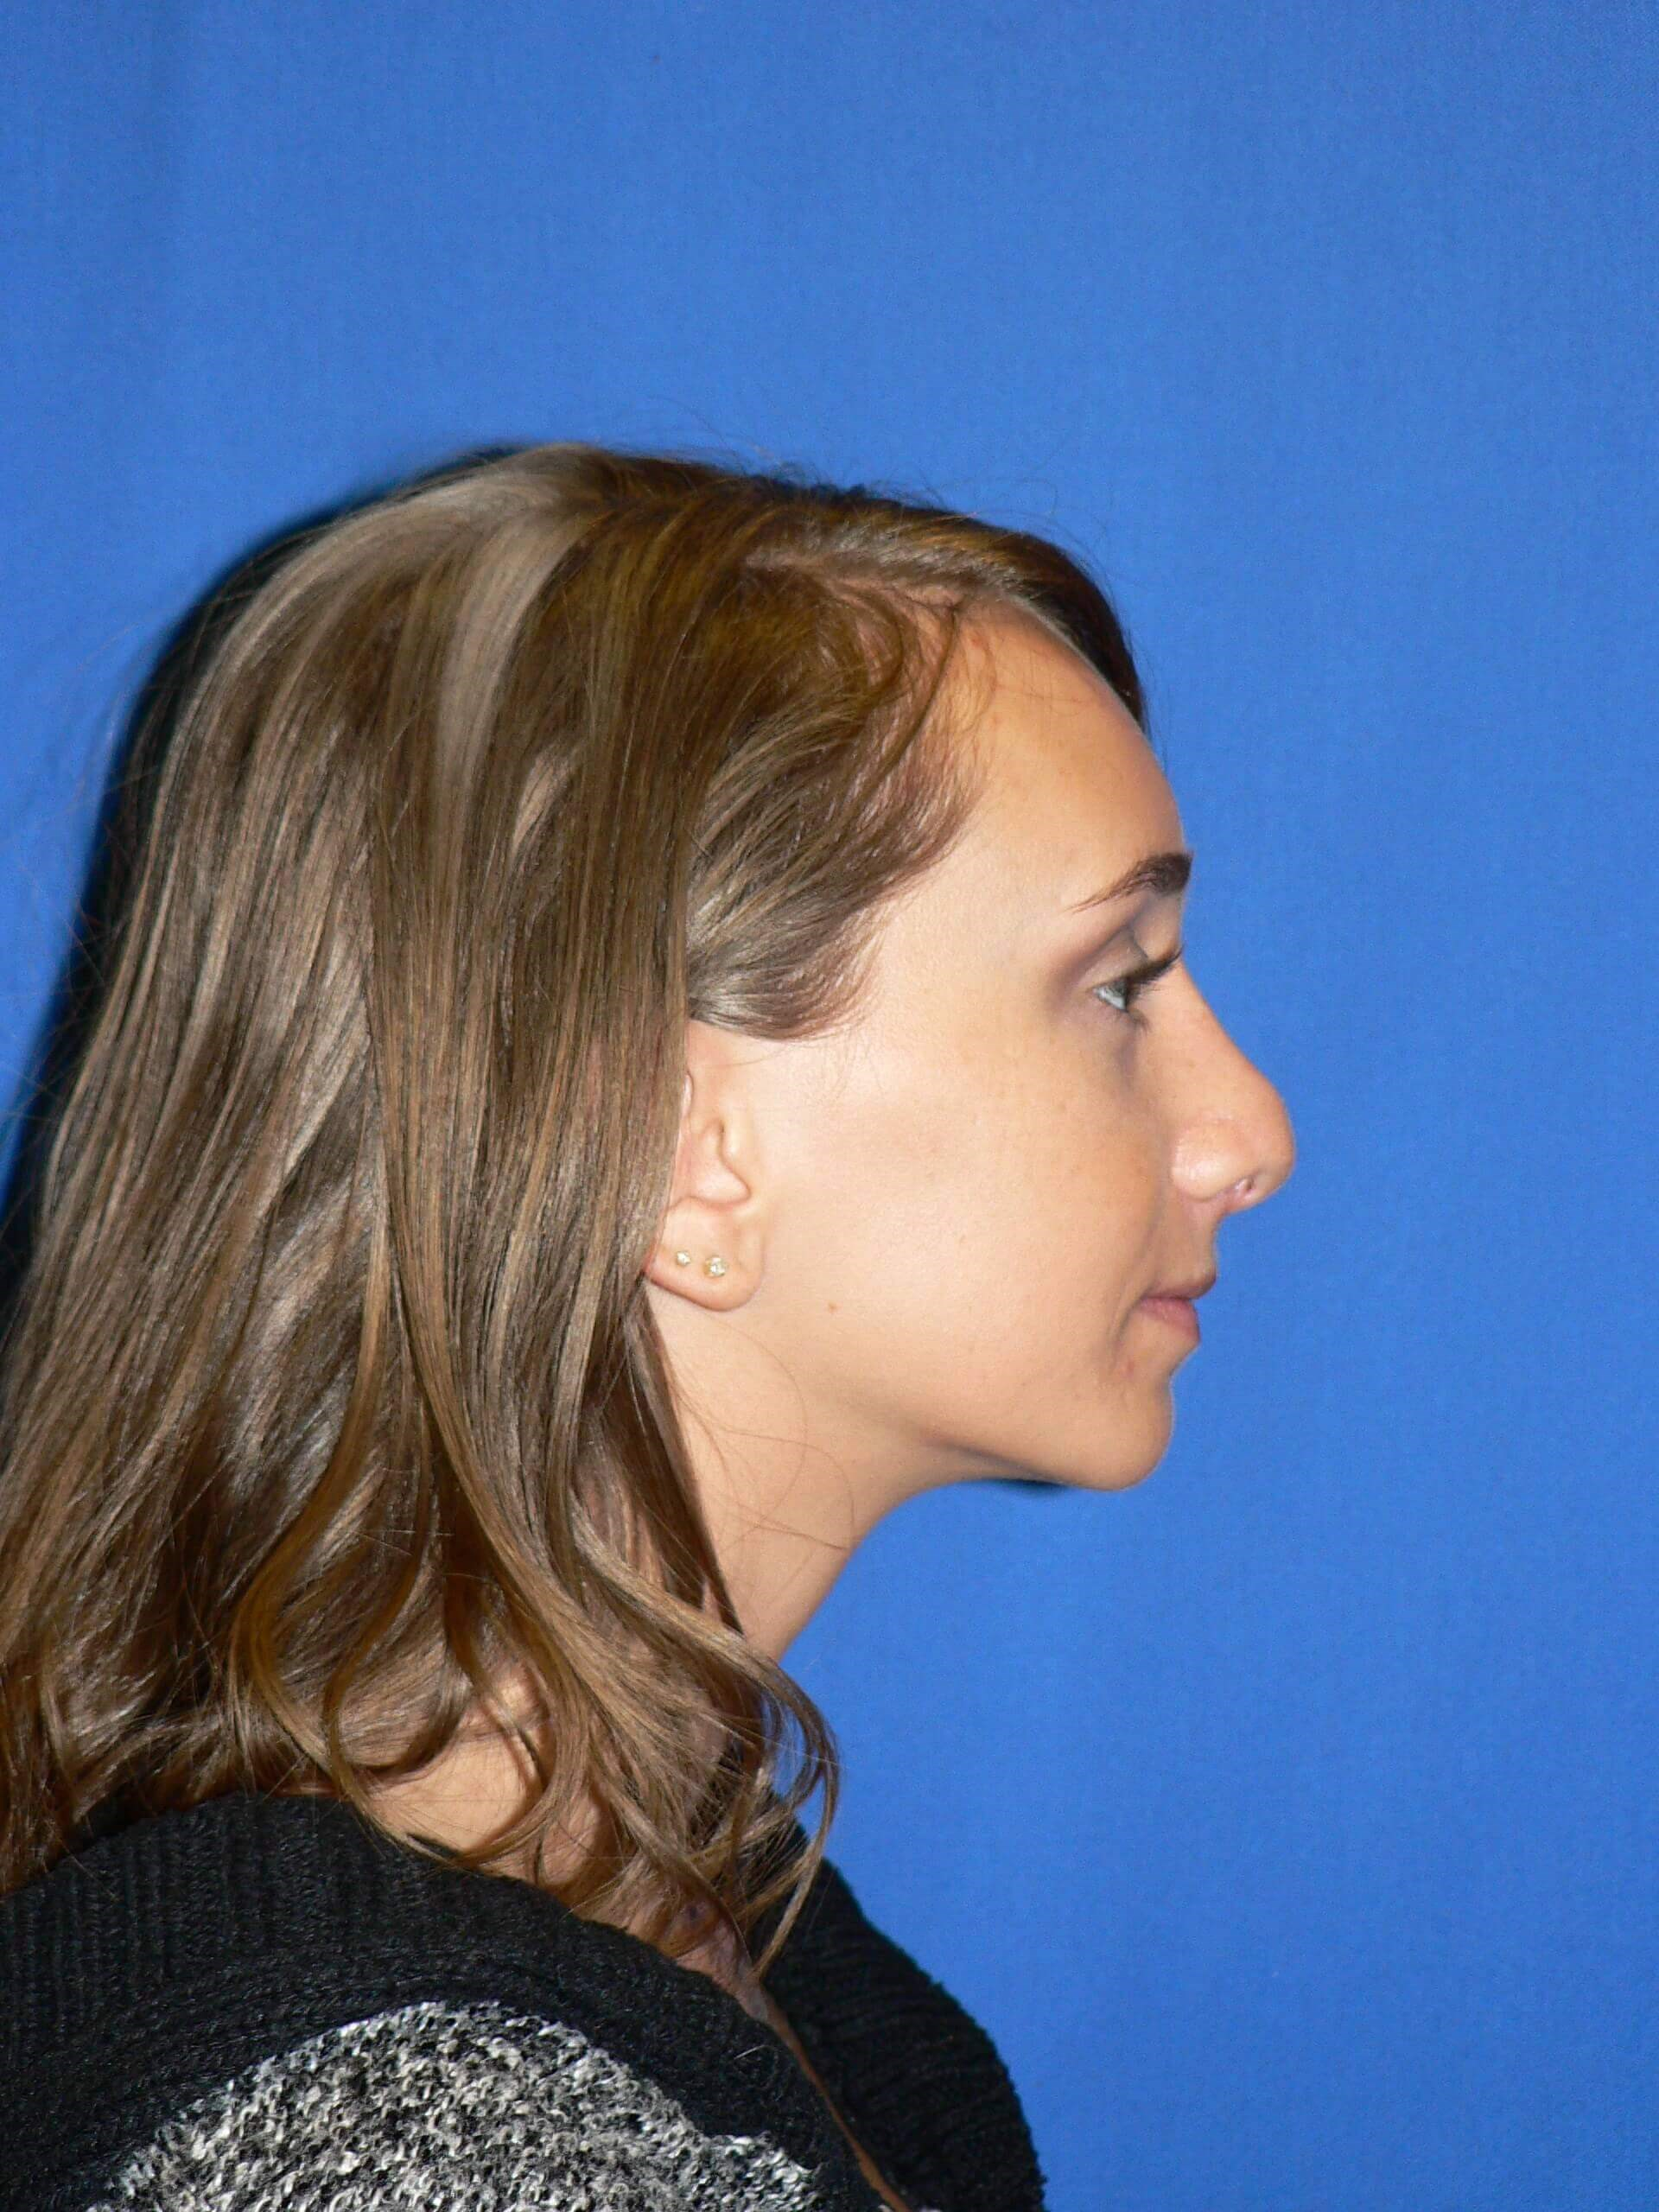 Revision rhinoplasty - Denver Before